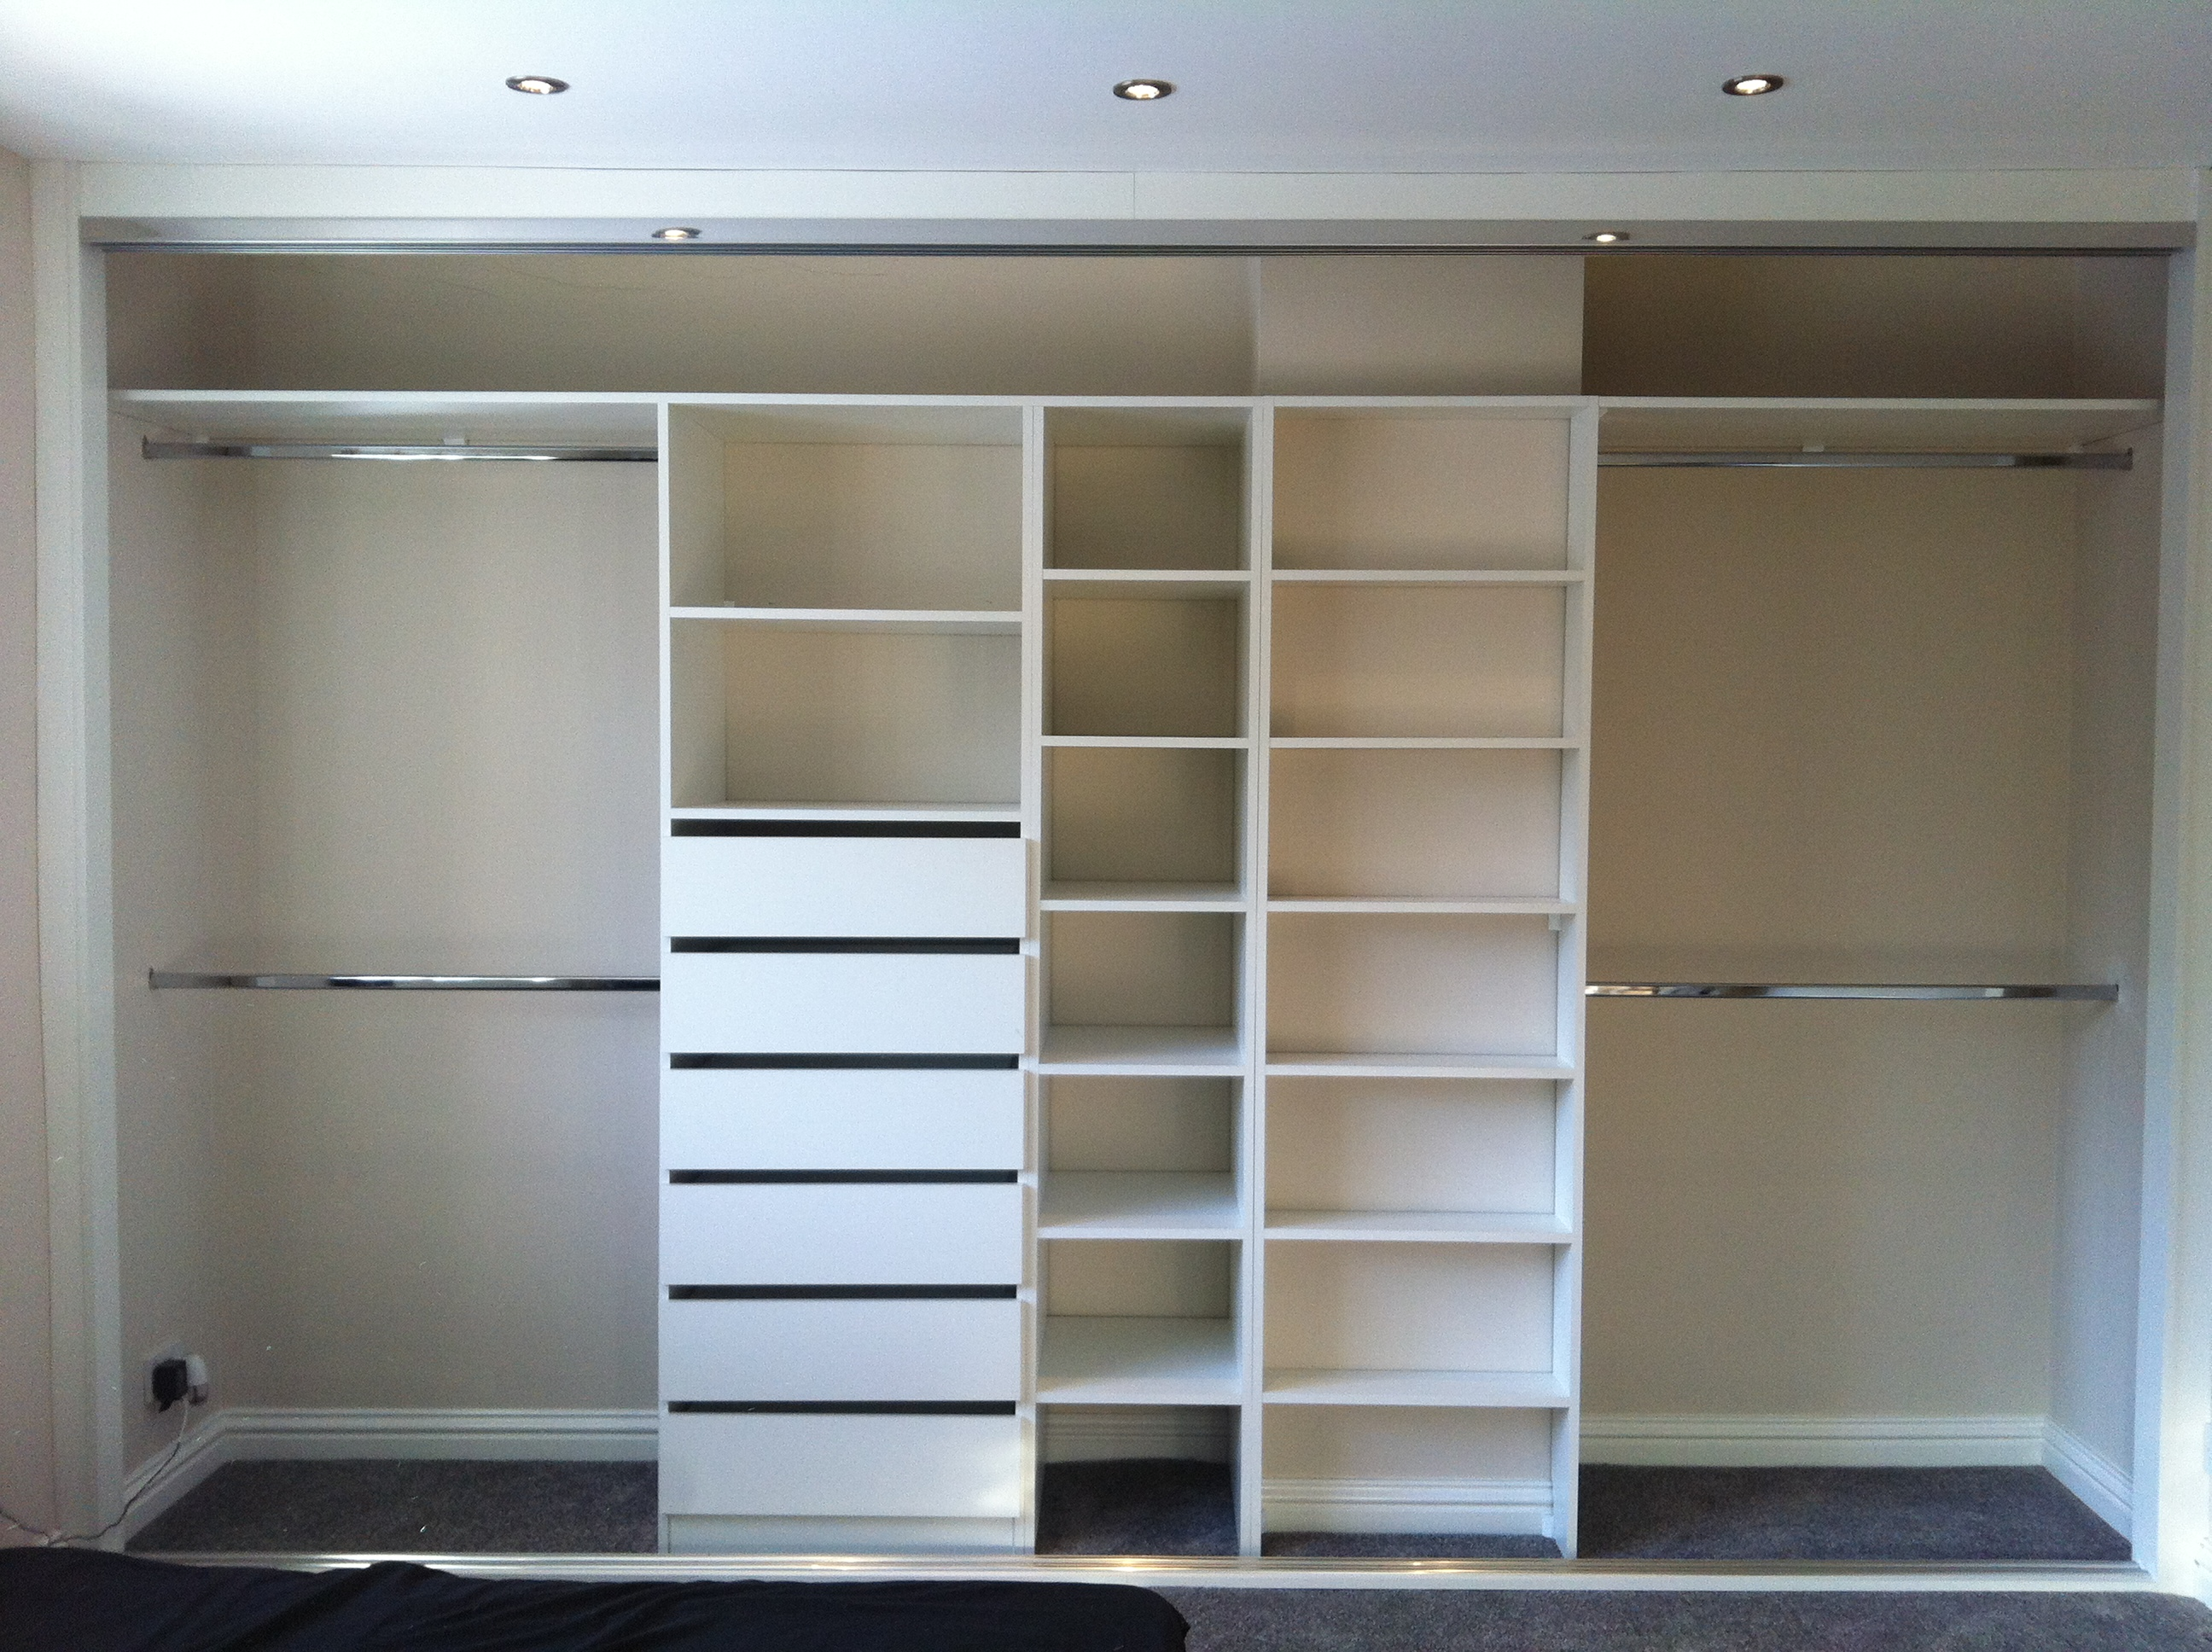 bespoke interior wardrobe sliding wardrobes. Black Bedroom Furniture Sets. Home Design Ideas